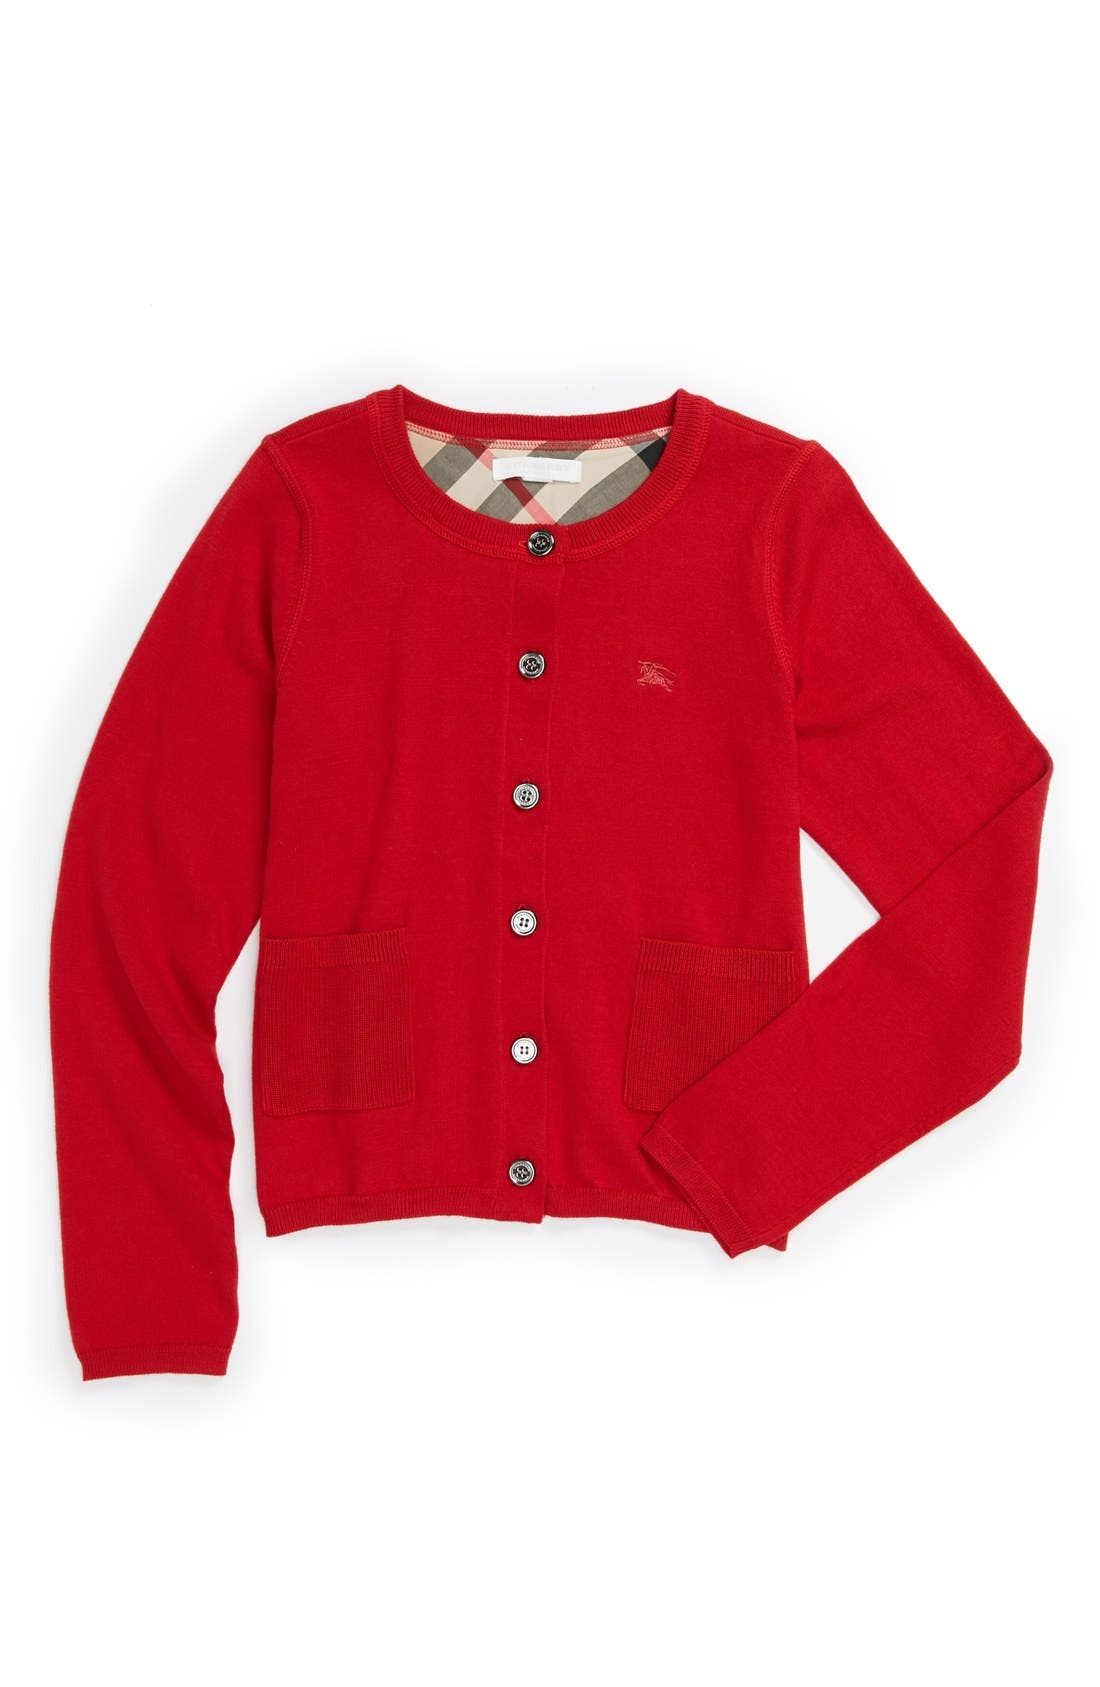 Main Image - Burberry 'Kiki' Cardigan (Little Girls & Big Girls)